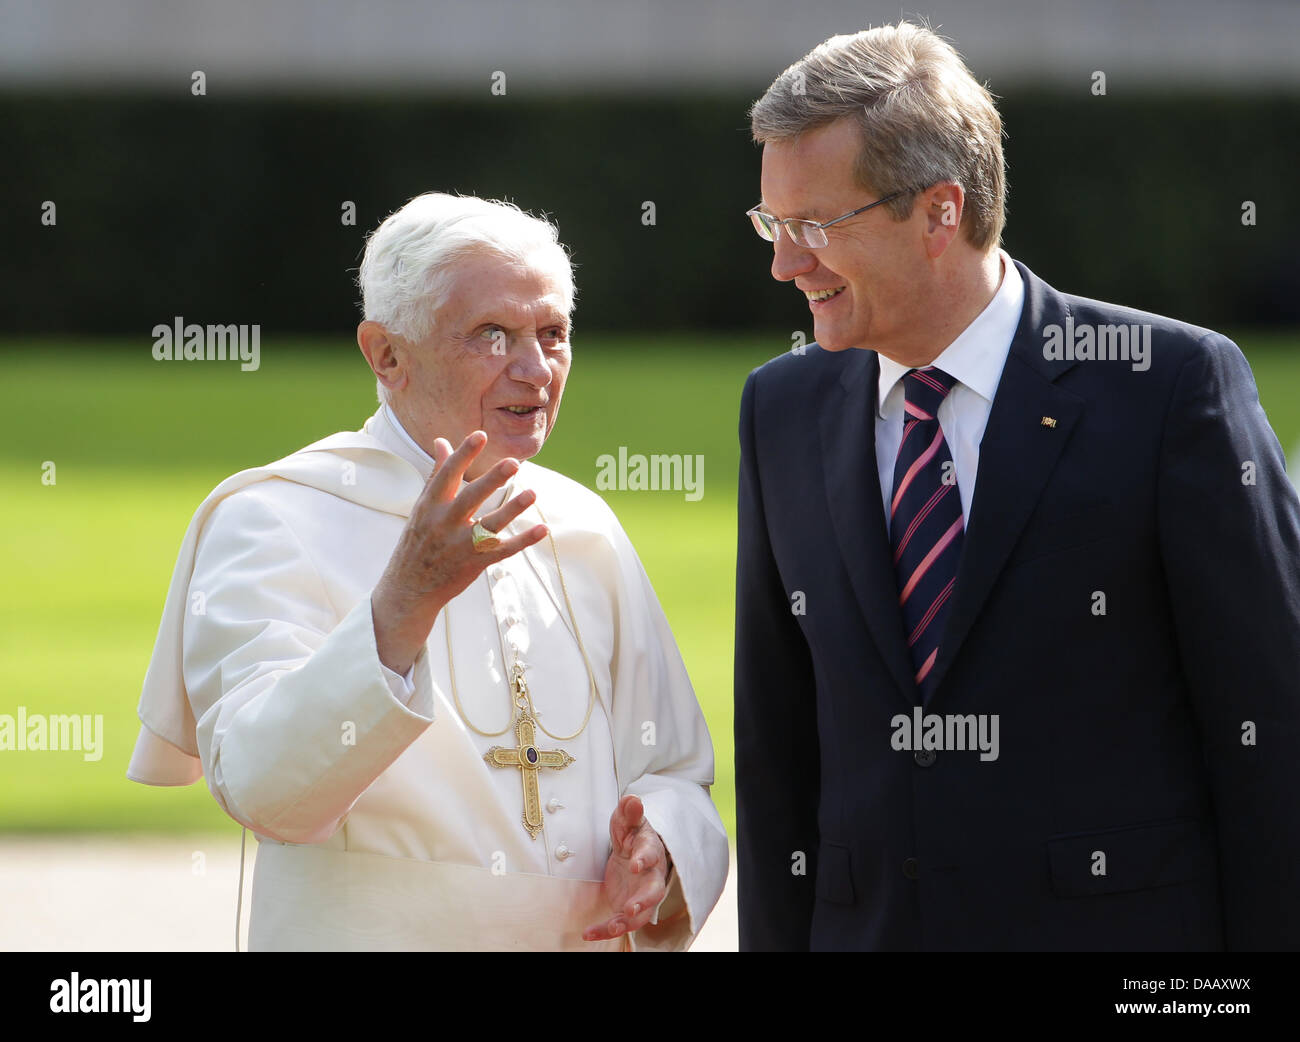 Pope Benedict XVI (L) speaks at Bellevue Palace in Berlin, Germany, 22 September 2011,with the German President - Stock Image